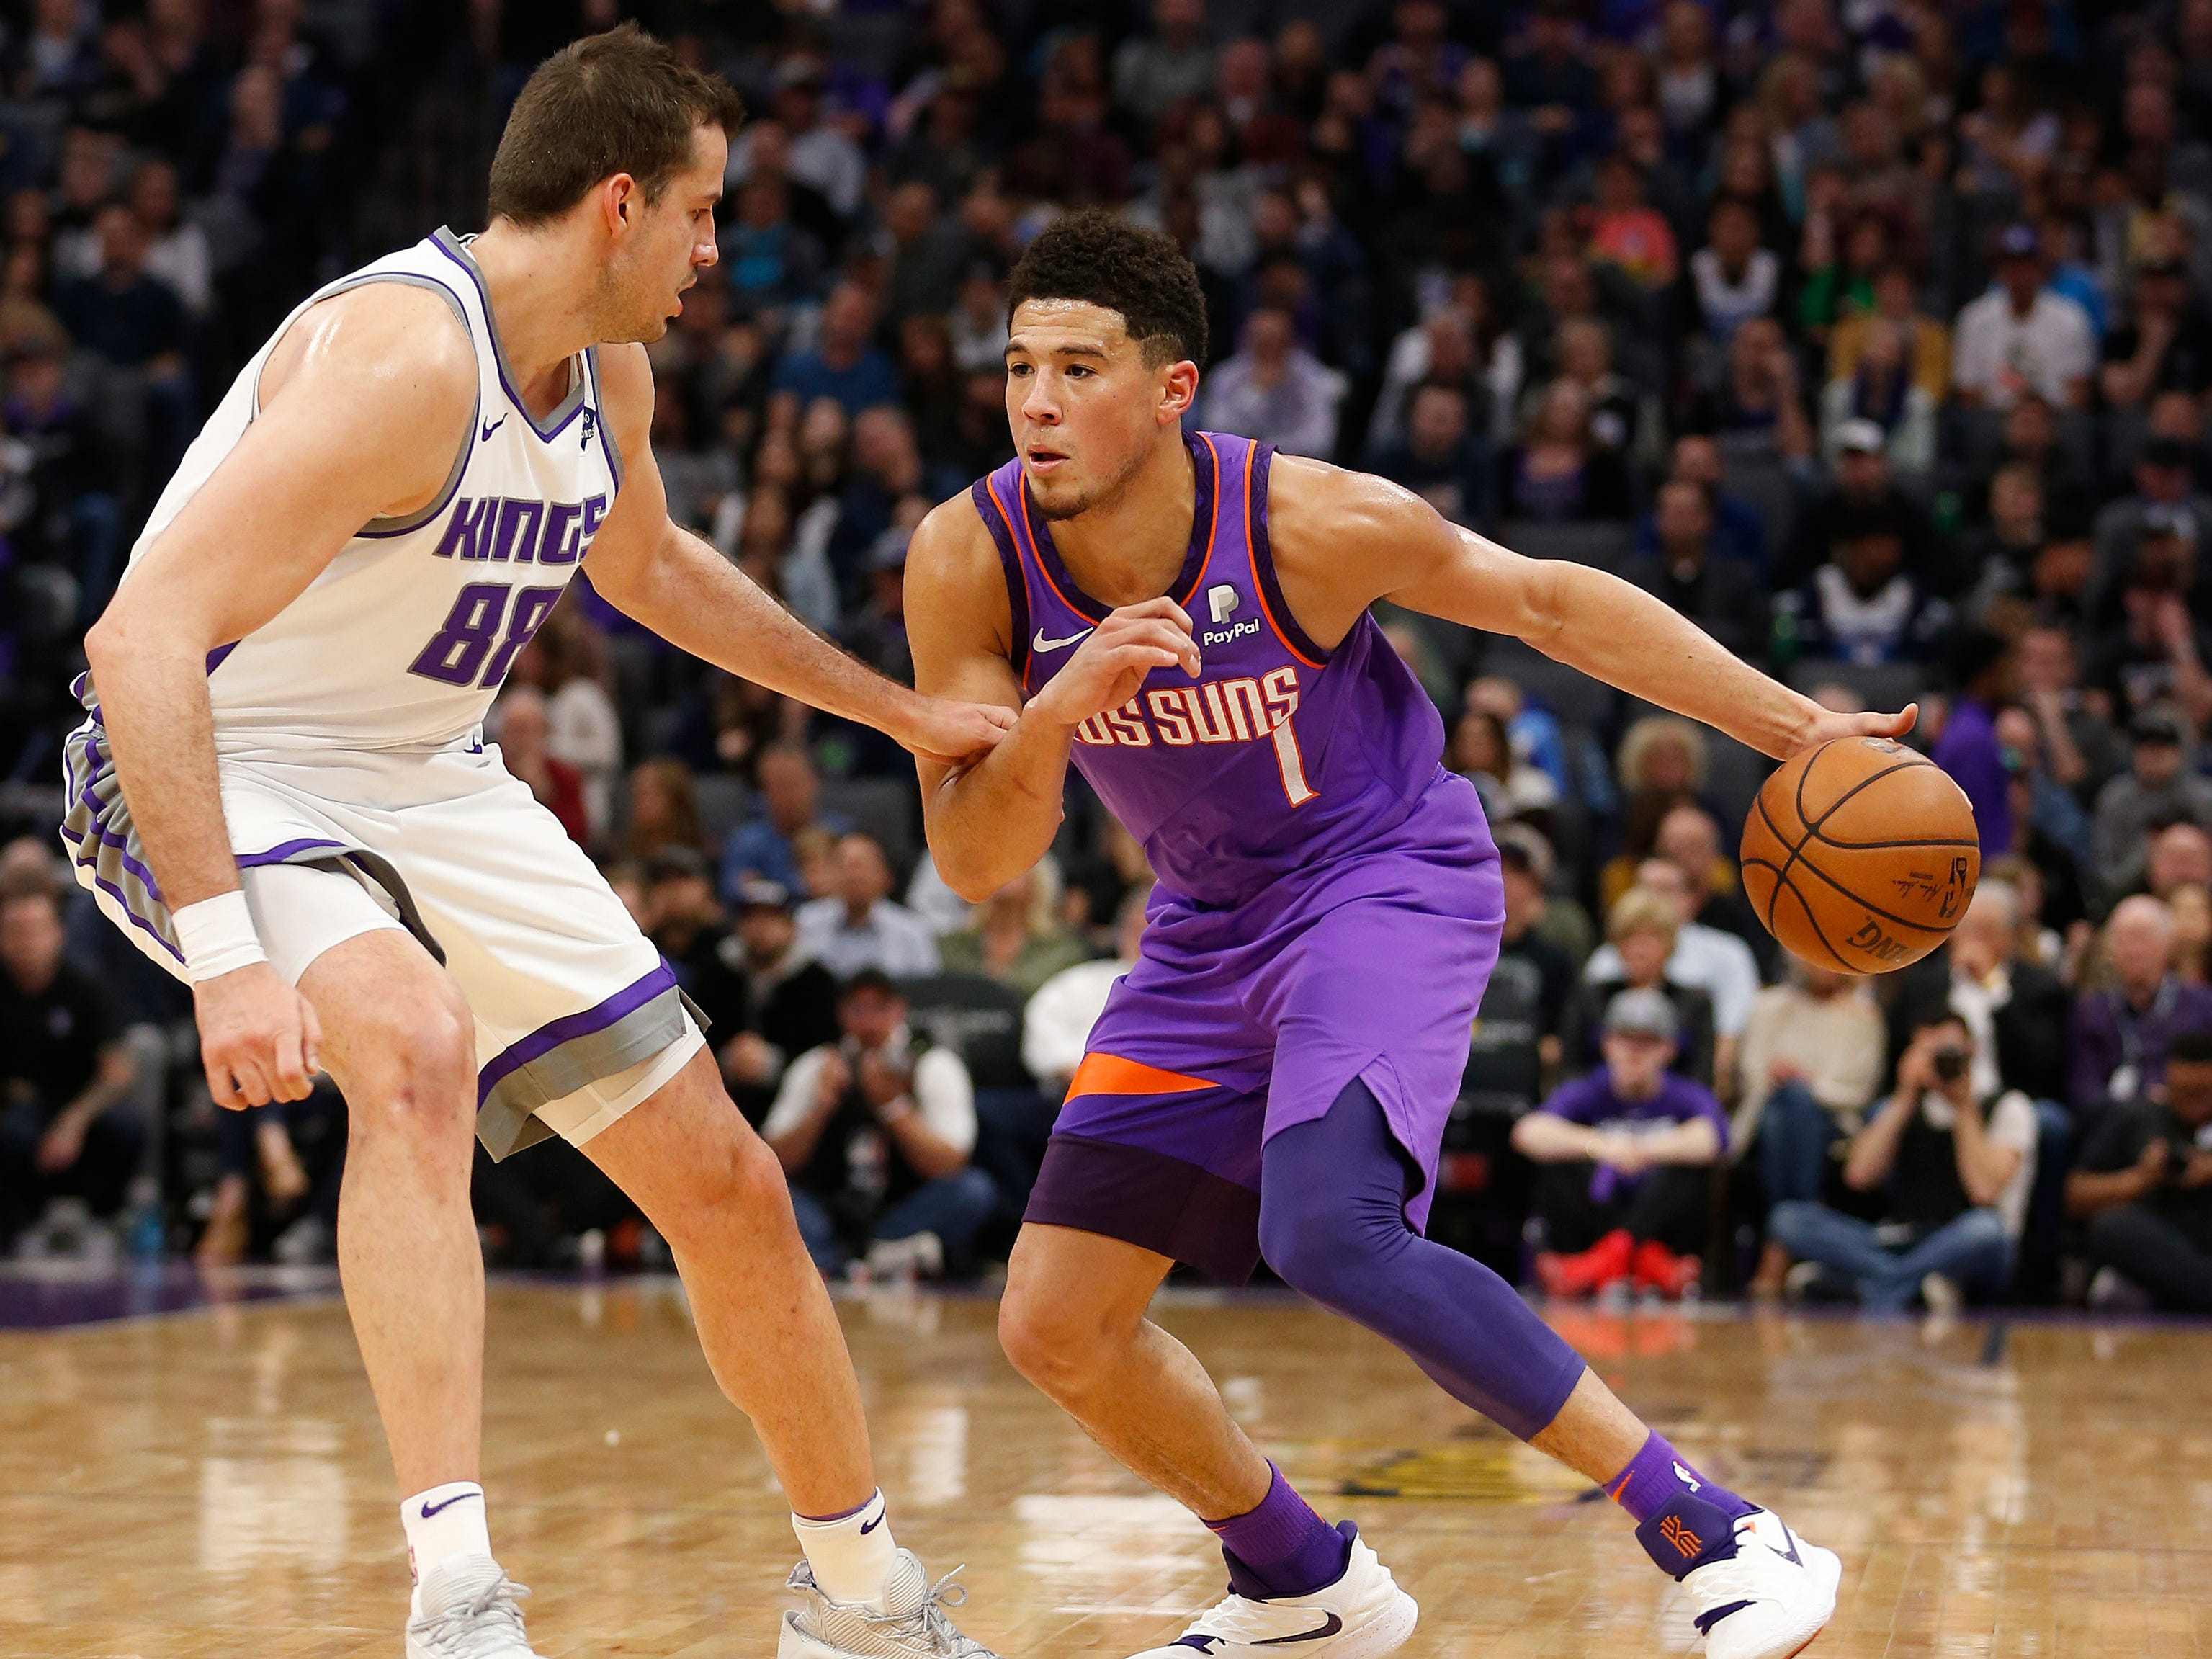 Phoenix Suns guard Devin Booker, right, drives against Sacramento Kings forward Nemanja Bjelica during the first quarter of an NBA basketball game Saturday, March 23, 2019, in Sacramento, Calif.